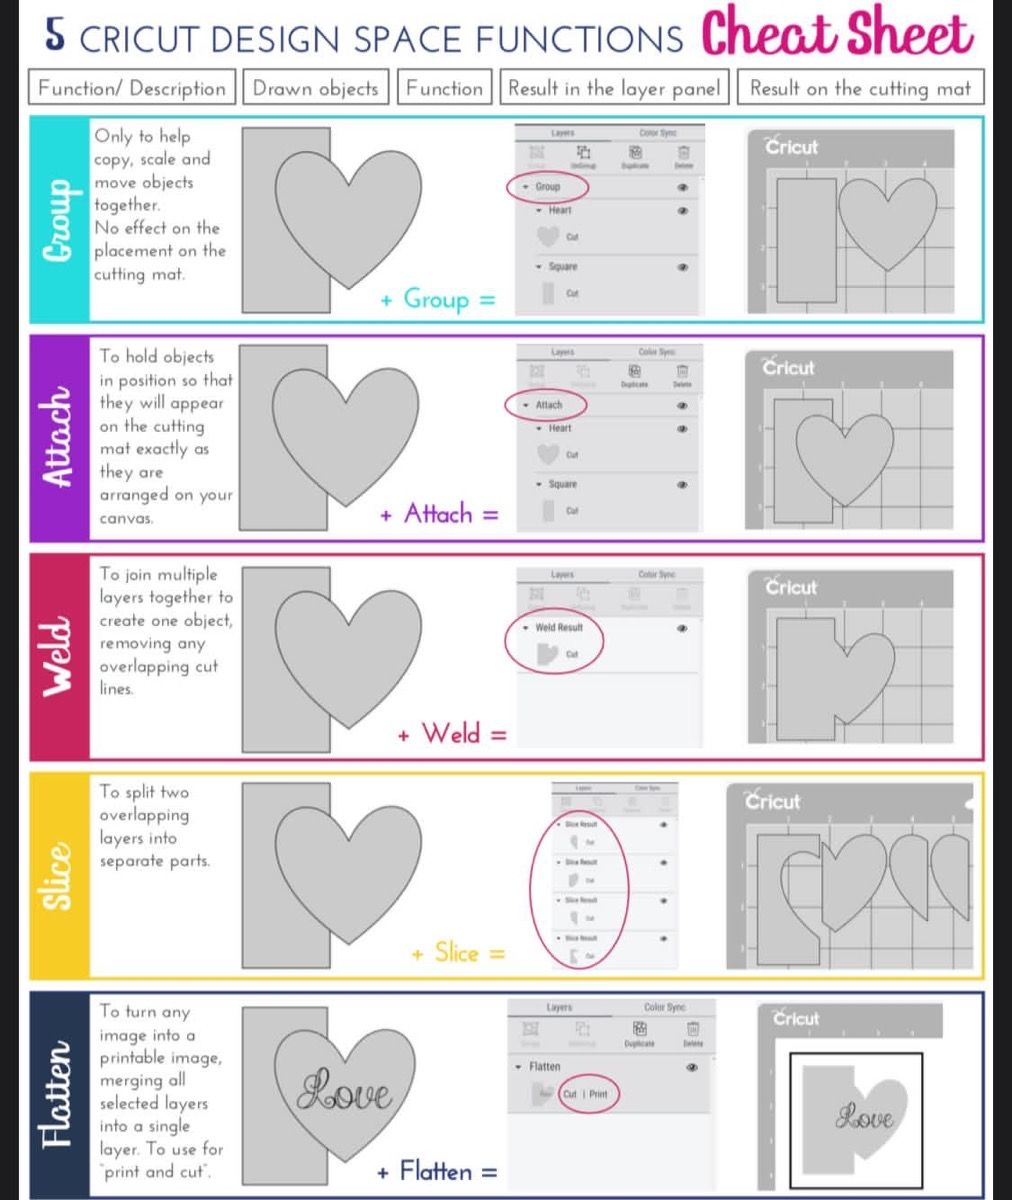 19++ How to print from cricut design space ideas in 2021